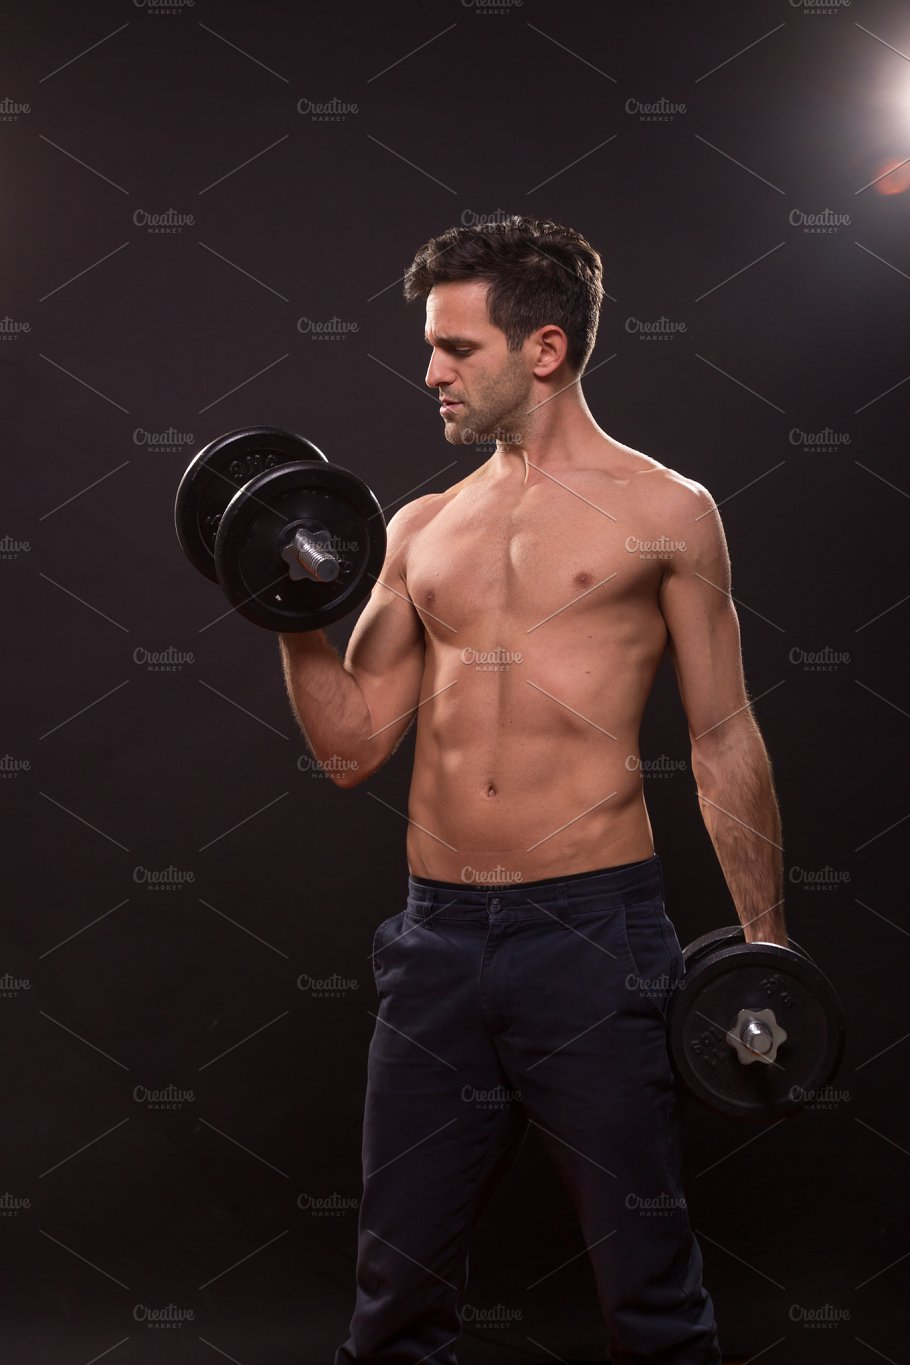 man fitness shirtless nude weights - People